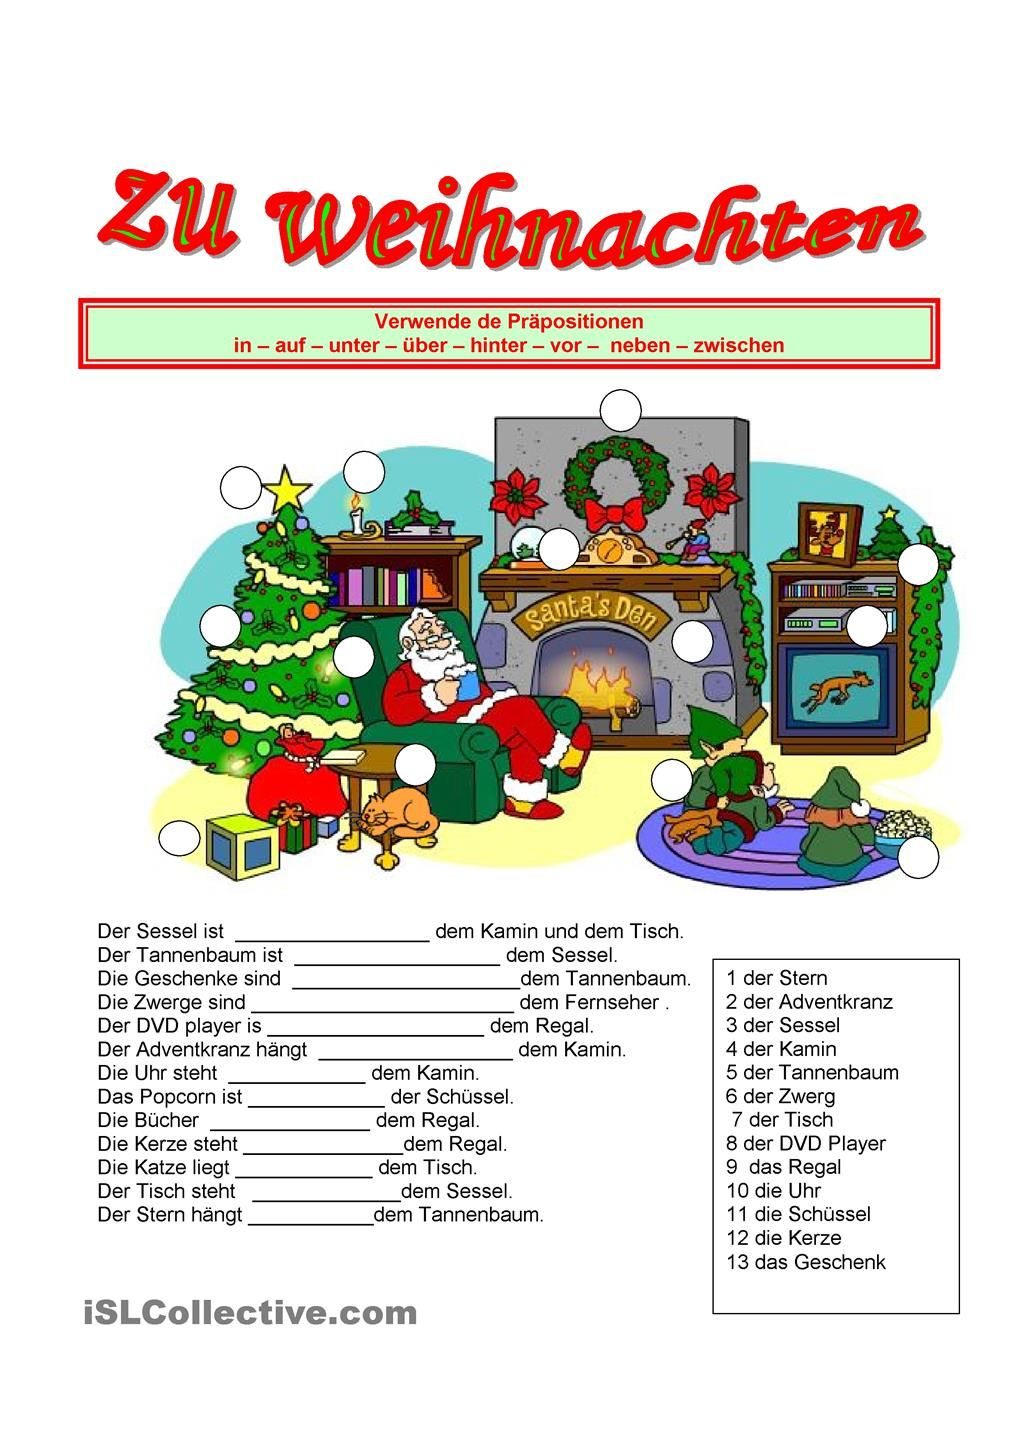 Zu Weihnachten. Nice Christmas-themed worksheet on two-way ...